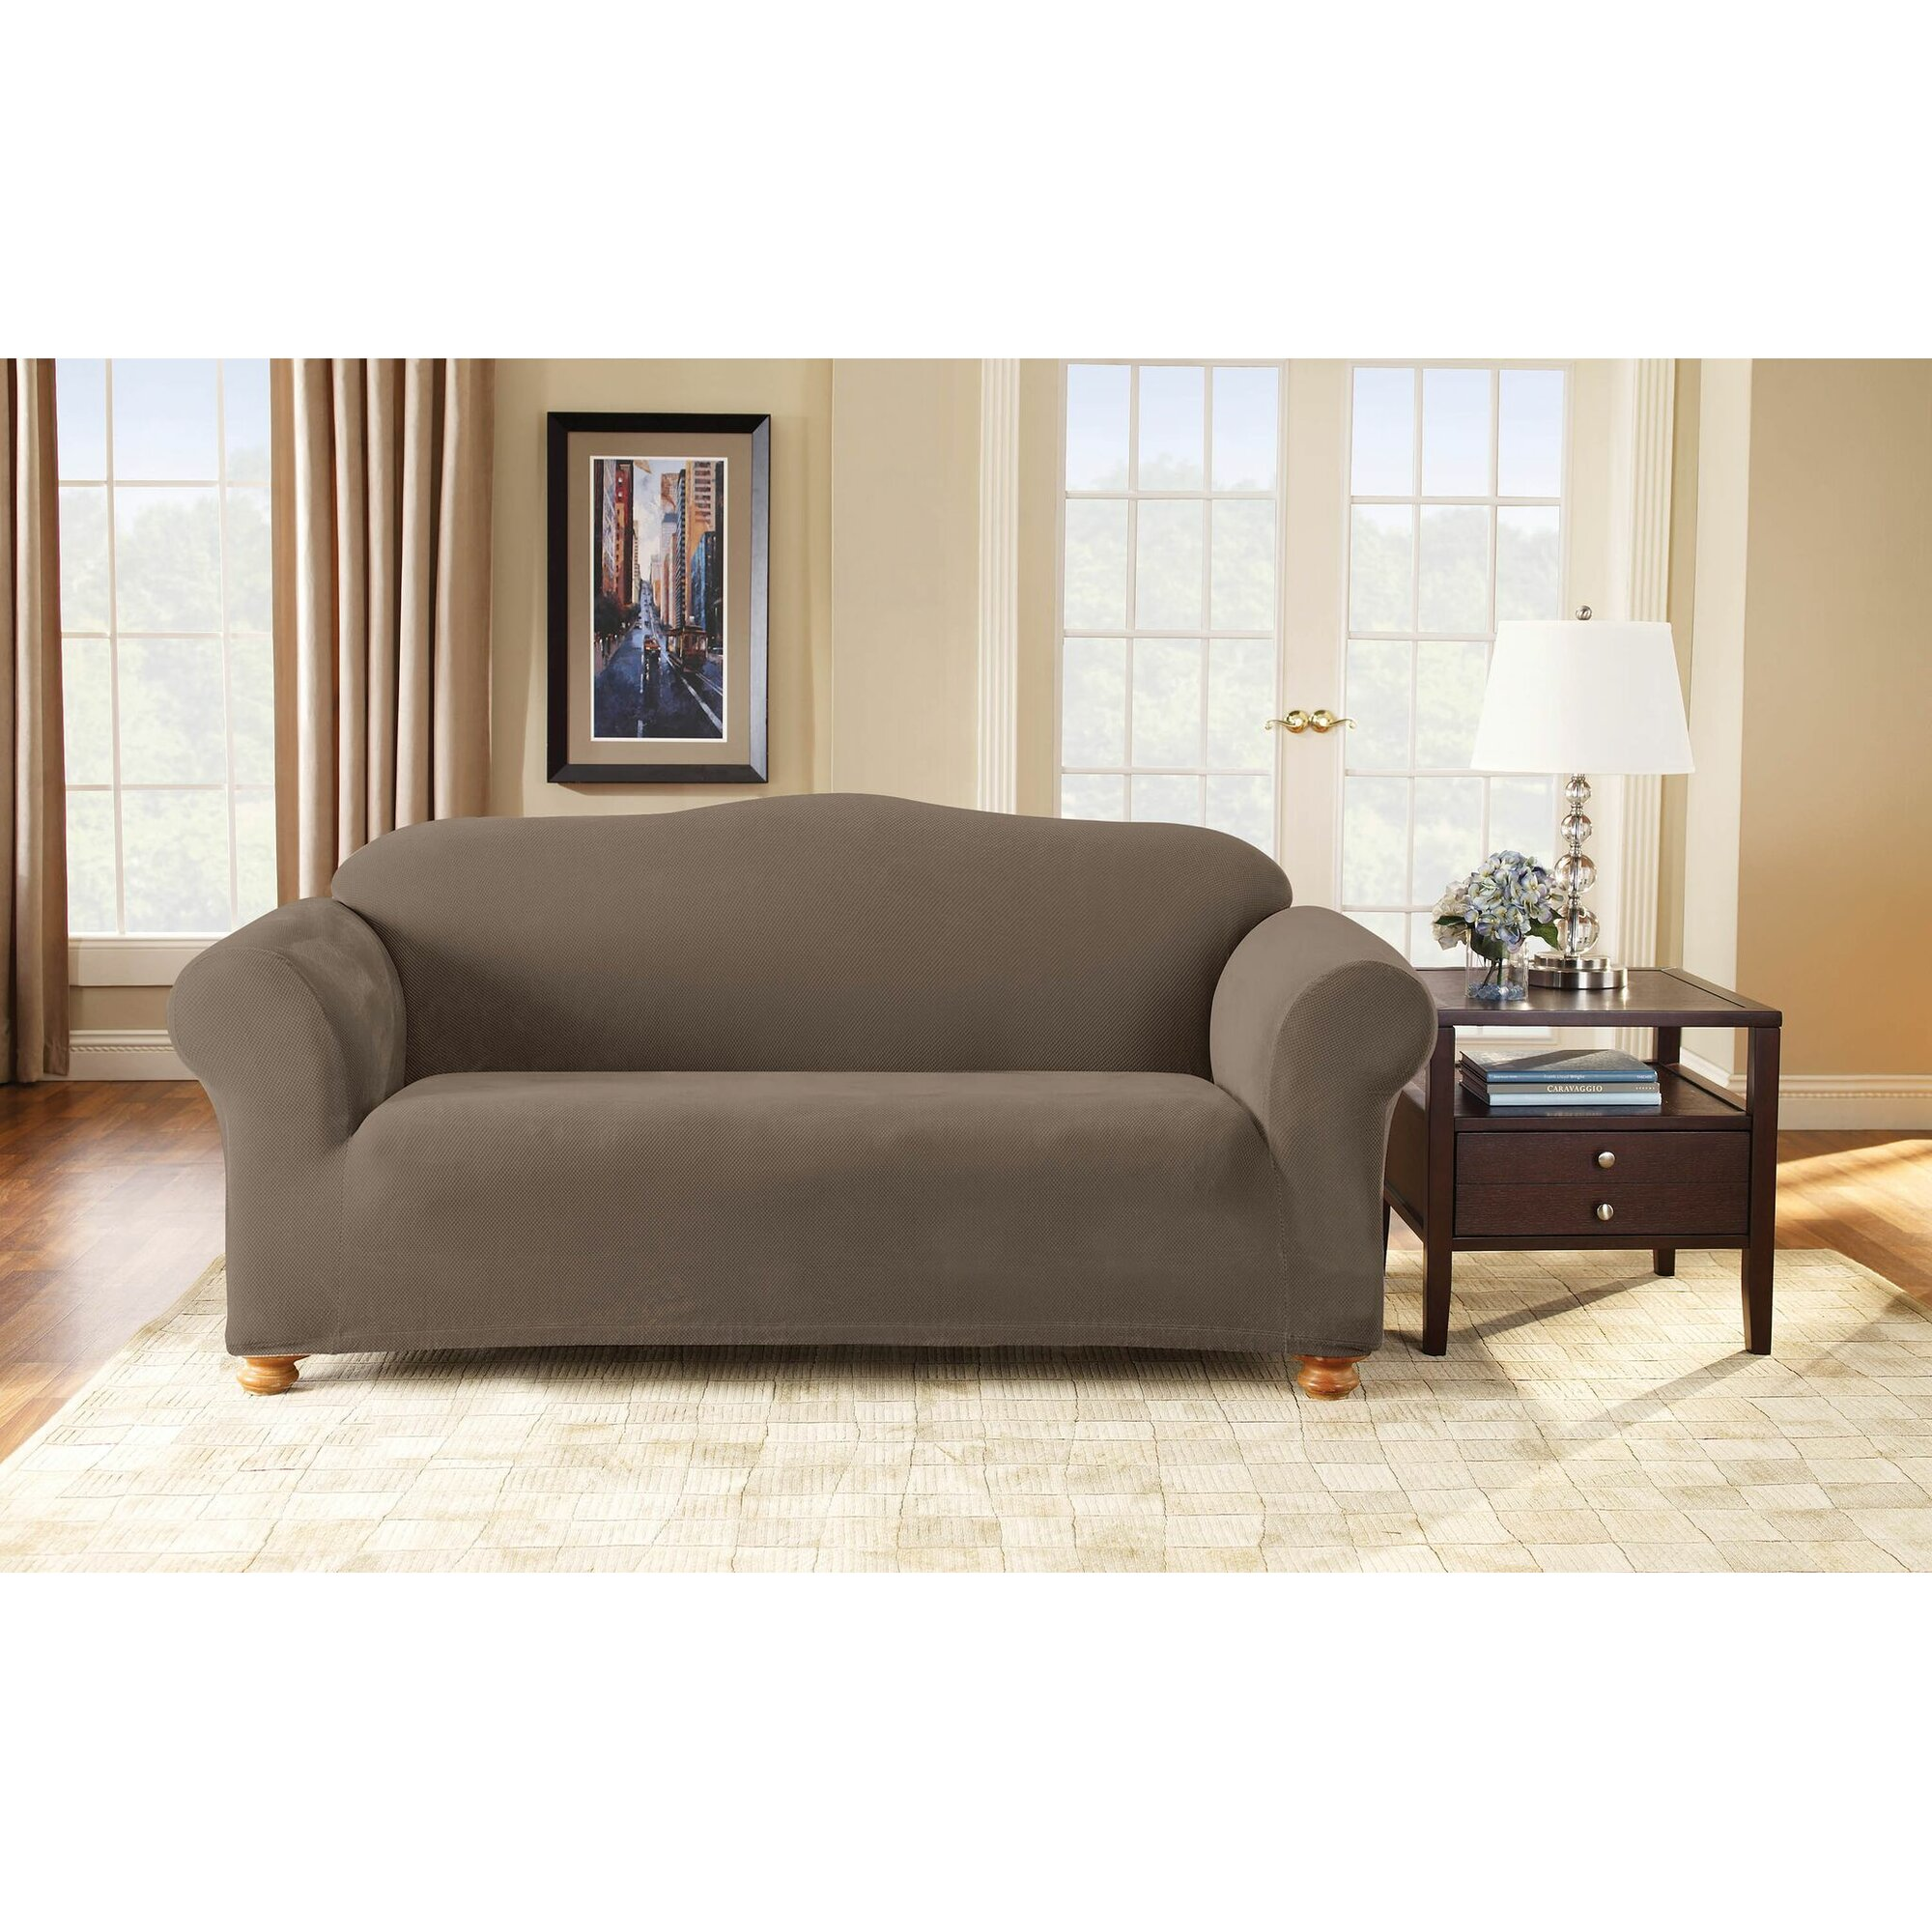 Sofa Slipcover With Separate Cushion Covers: Sure Fit Stretch Pique Separate Seat Sofa Slipcover